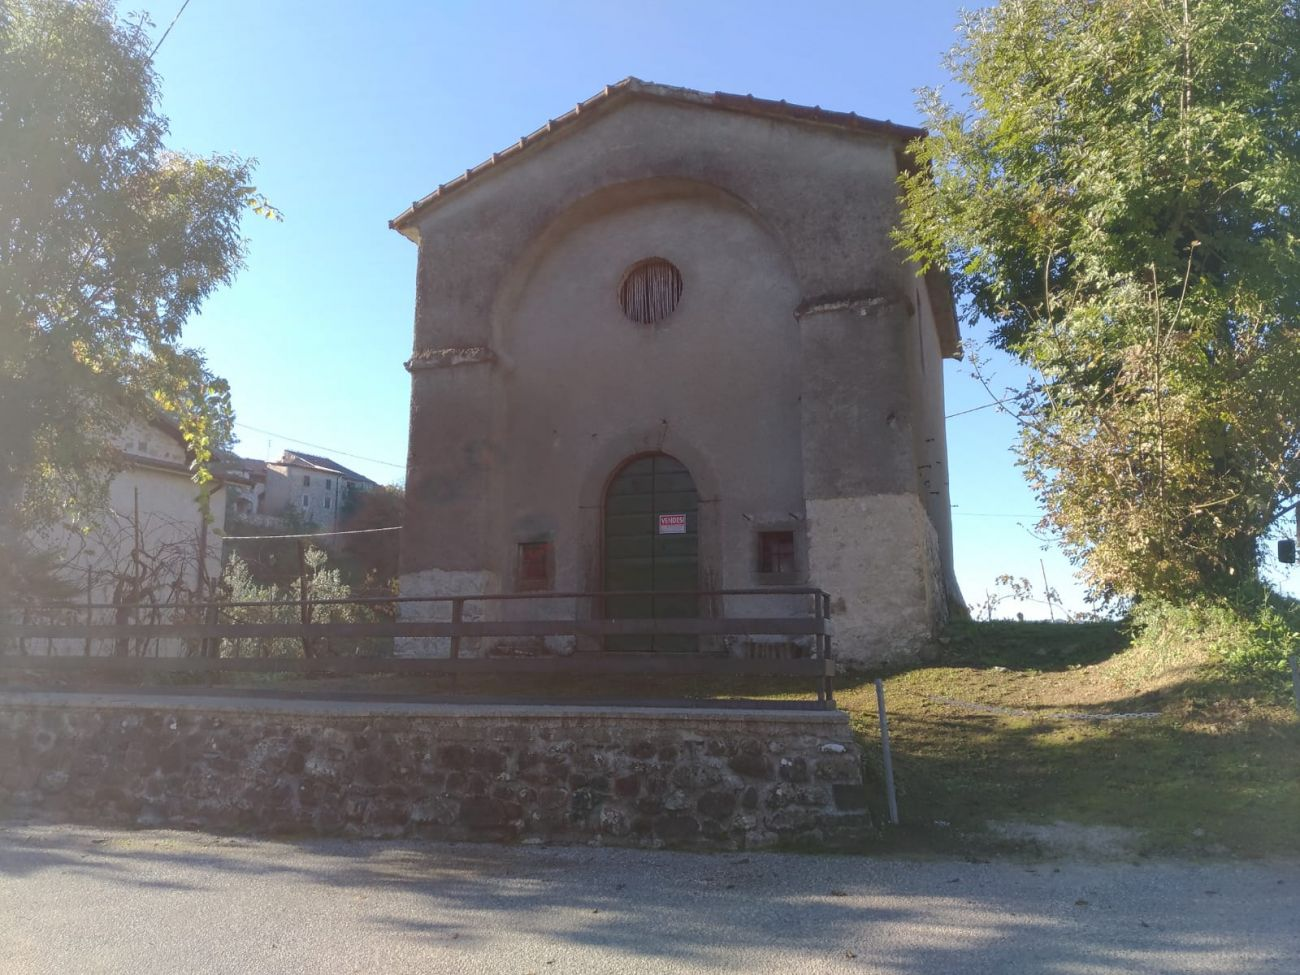 "VILLAFRANCA L. – ANCIENT ORATORY ""AIA DEL GOGGIO"" TO BE TRANSFORMED"